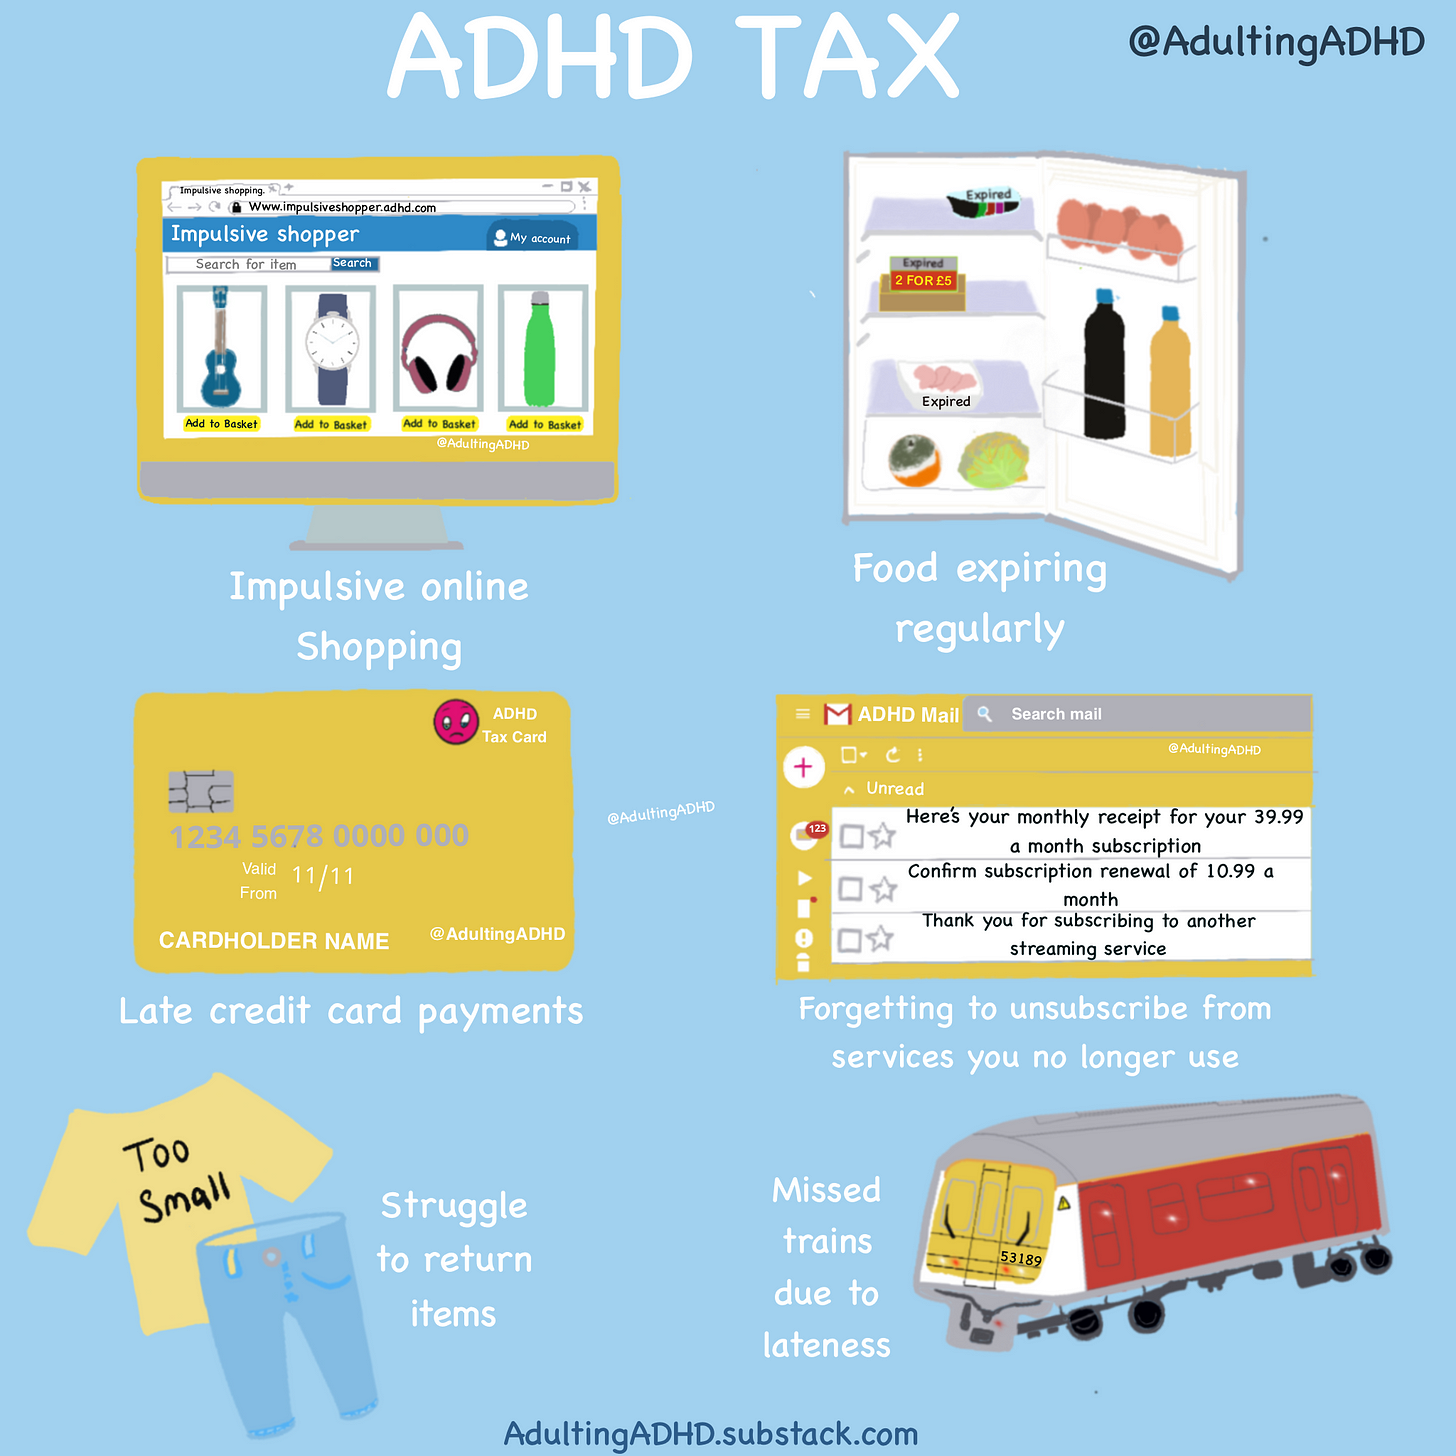 Image titled ADHD Tax with 6 images. The first image: An online store titled 'impulsive shopper' with images of a ukele, a watch, headphones and a water bottle. The second image is a fridge with expired food and rotten lettuce and orange. The third image is of a credit card. The forth image is an email page with three emails on paid subscriptions. The fifth image is a T-shirt and a pair of jeans, the fourth image is a red/grey train